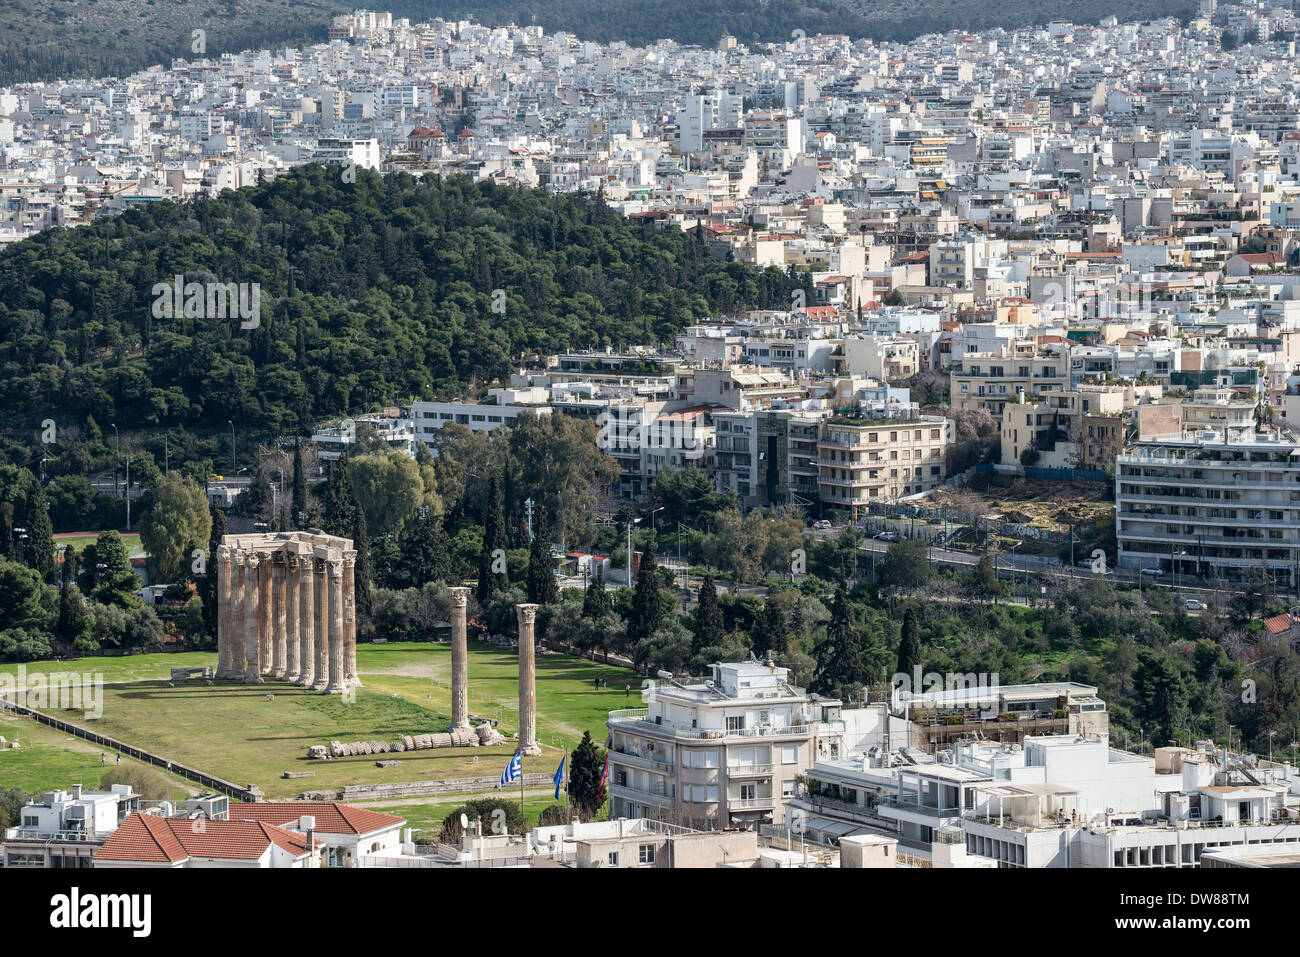 Ancient site of the Temple of Olympian Zeus seen against the modern city skyline of Athens, Greece, - Stock Image